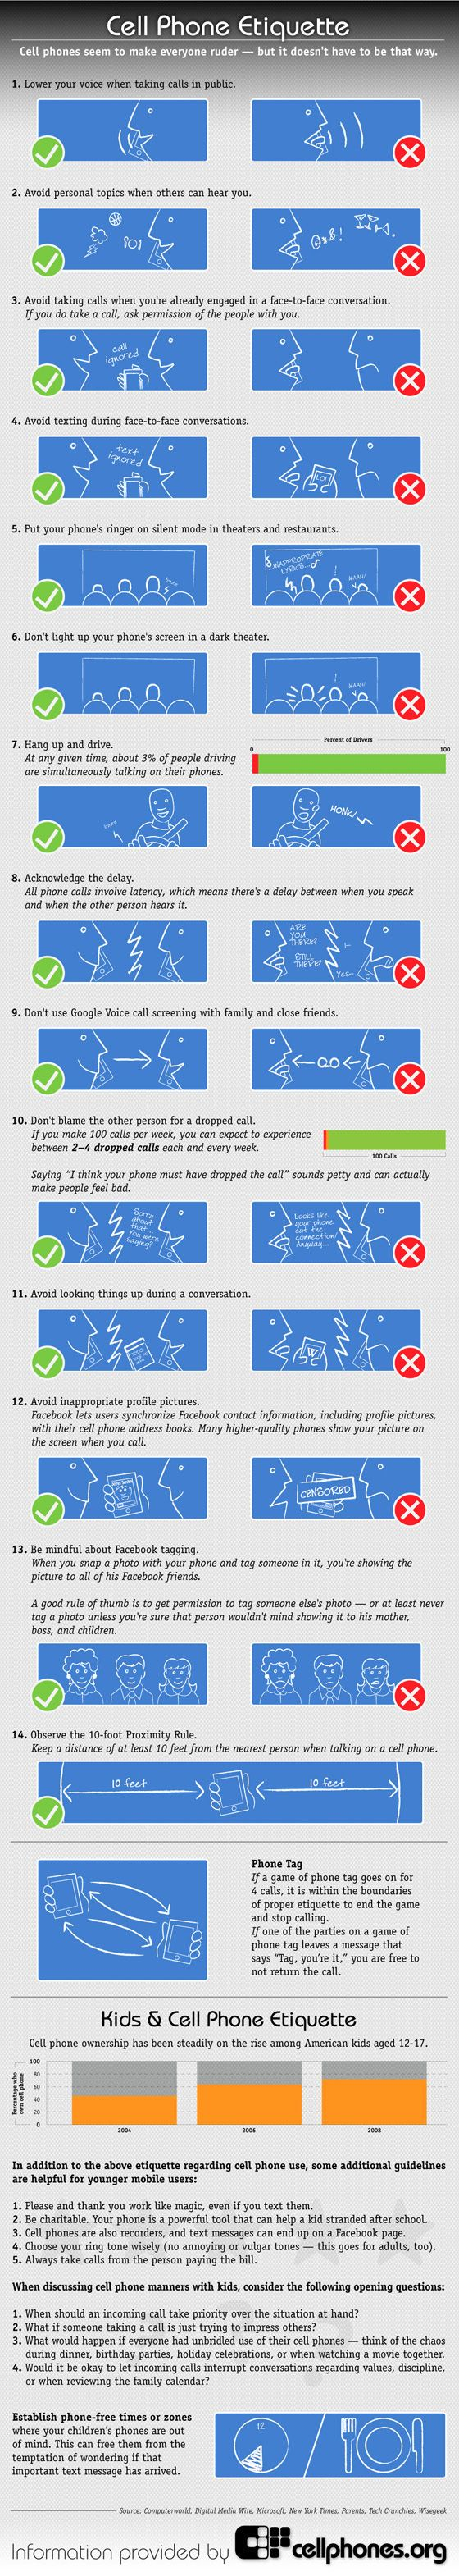 Cell phone etiquette. Learn it. Love it. Live it, and for the love of whatever you find holy, spread it.